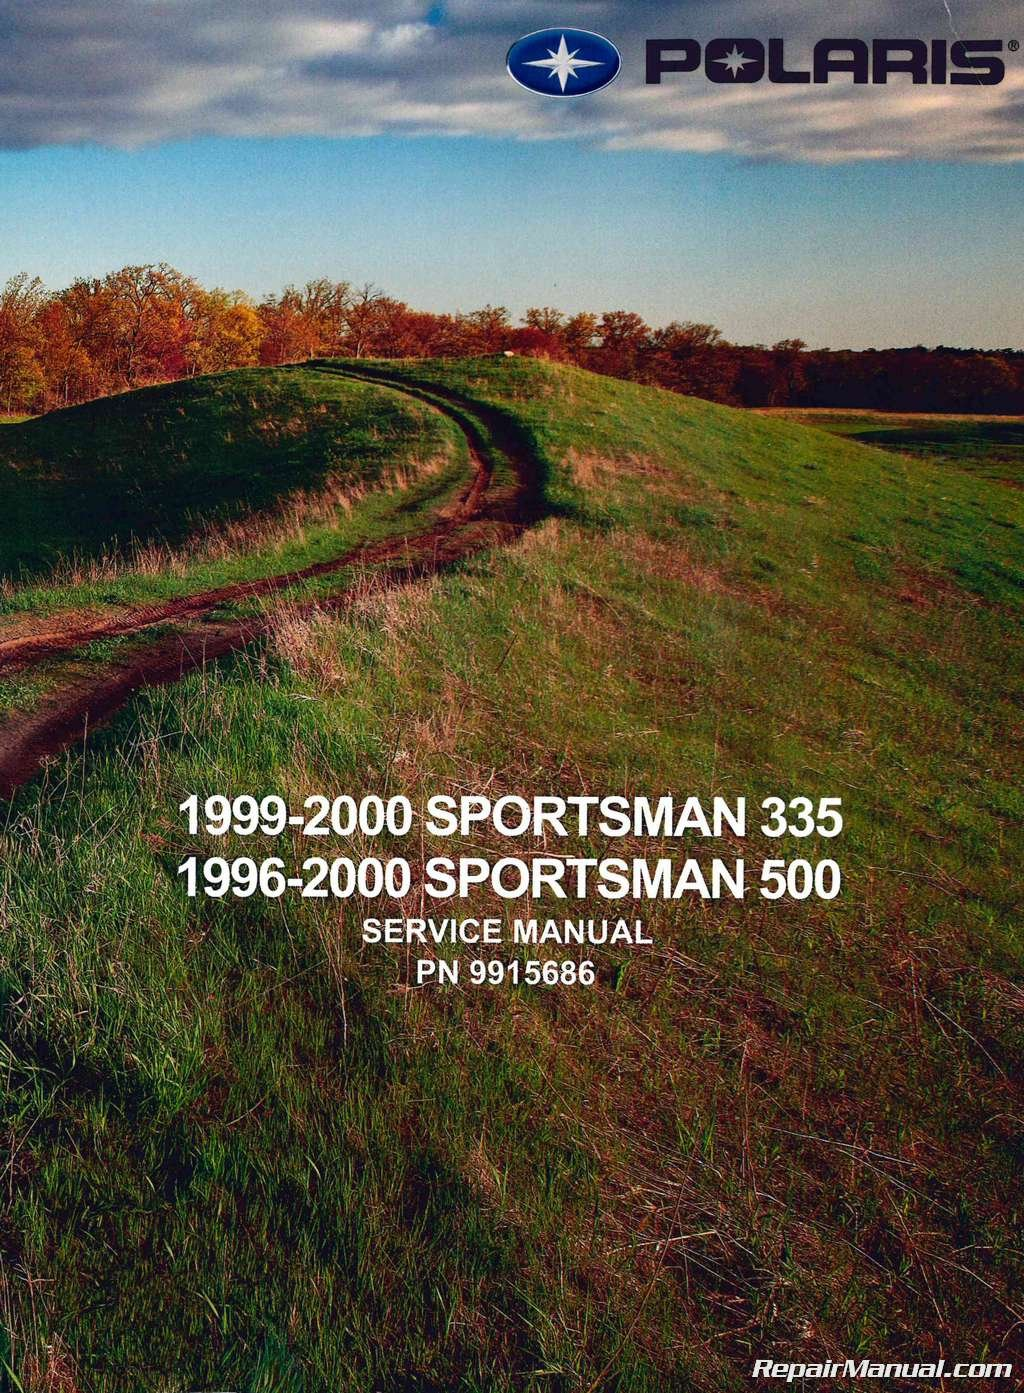 9915686 1996-2000 Polaris Sportsman 335 500 ATV Service Manual:  Manufacturer: Amazon.com: Books